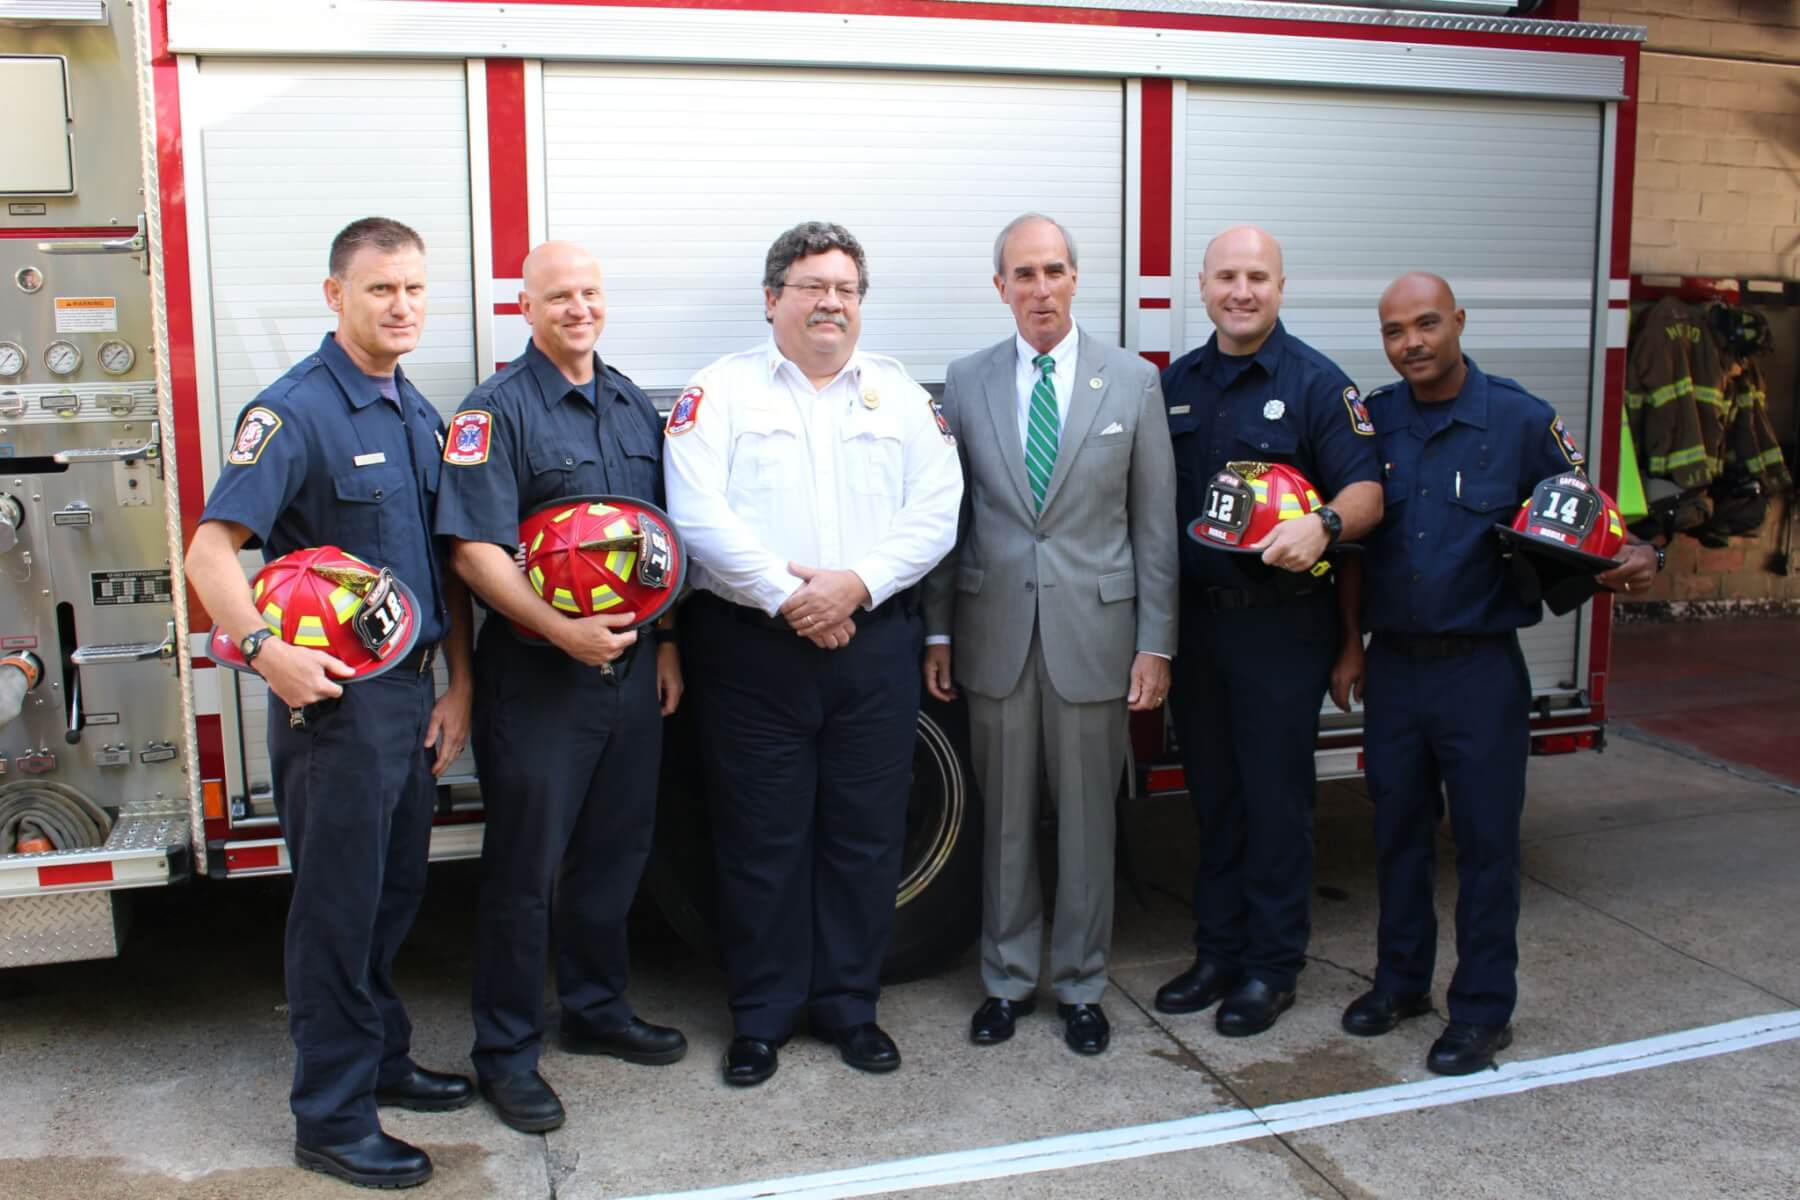 MFRD promotes four new captains